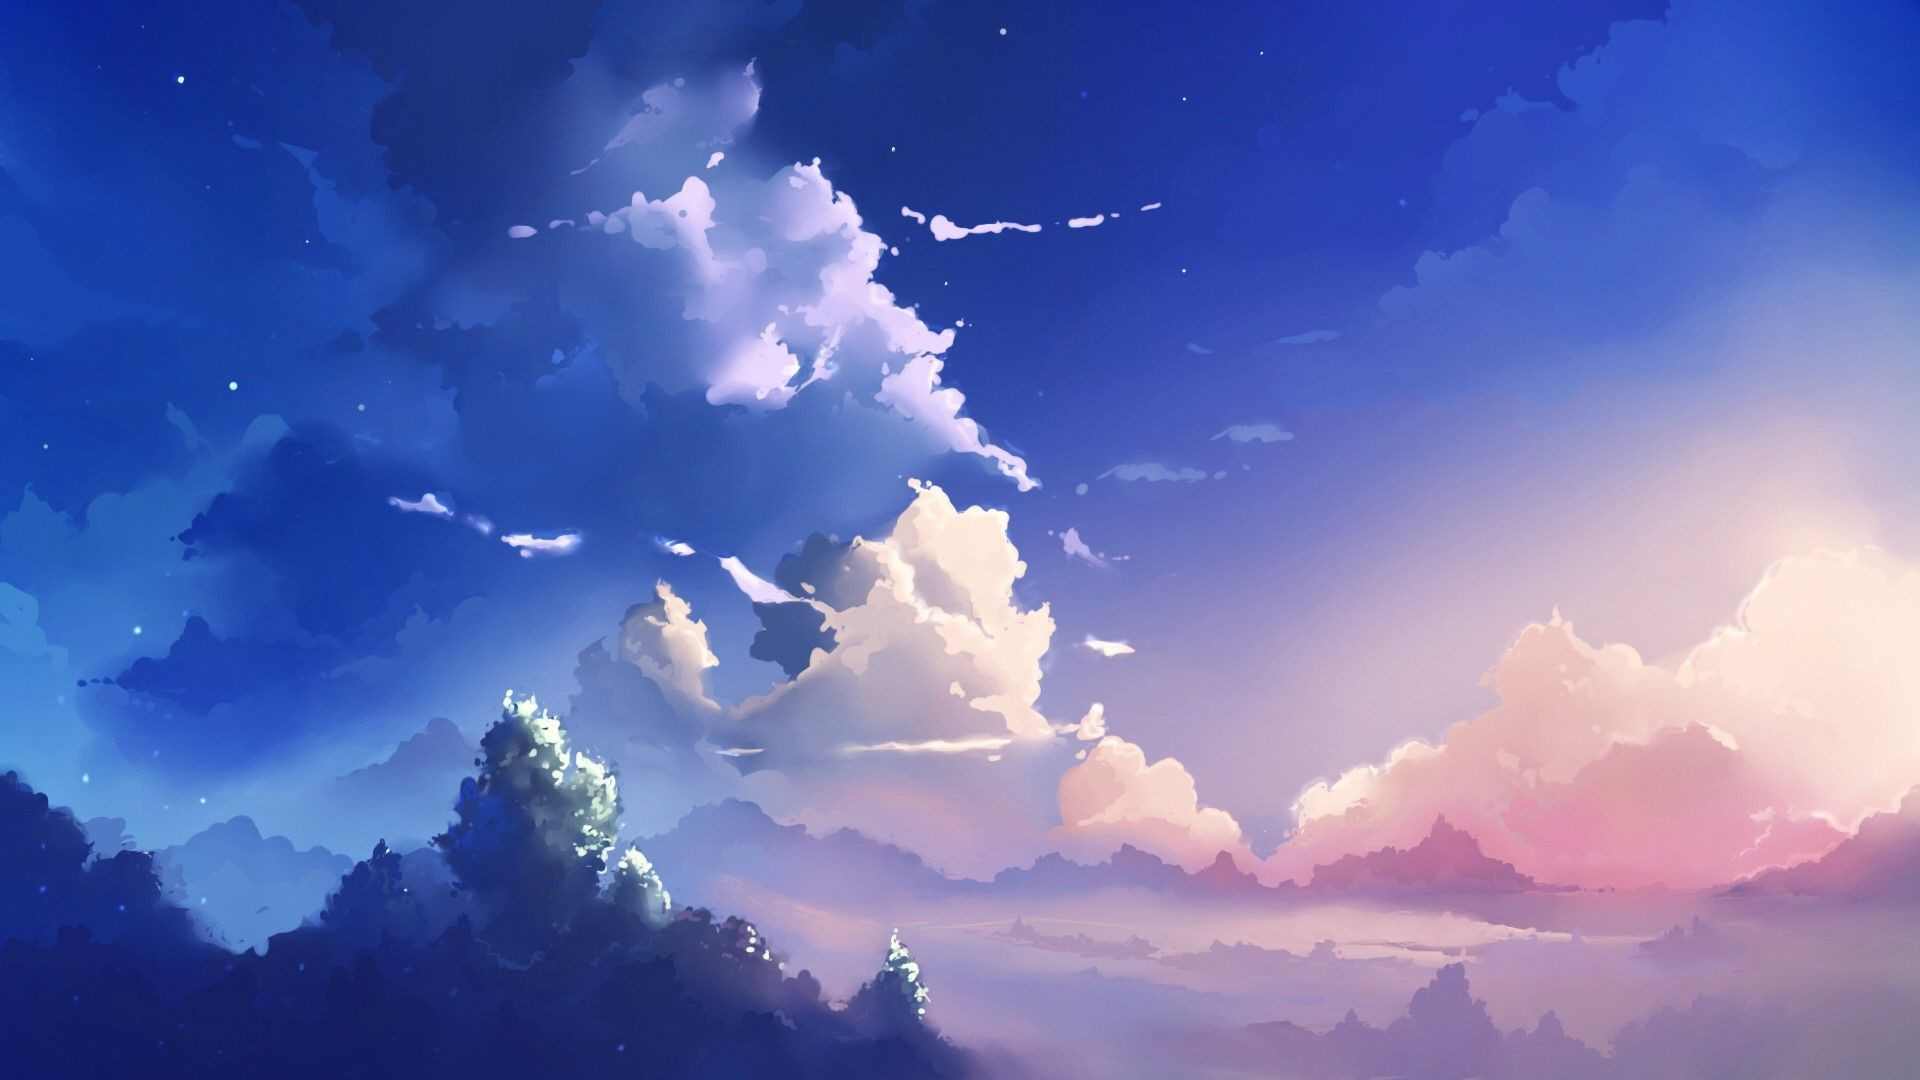 Res: 1920x1080, Anime Scenery Wallpaper Tumblr Hd Pictures 4 HD Wallpapers